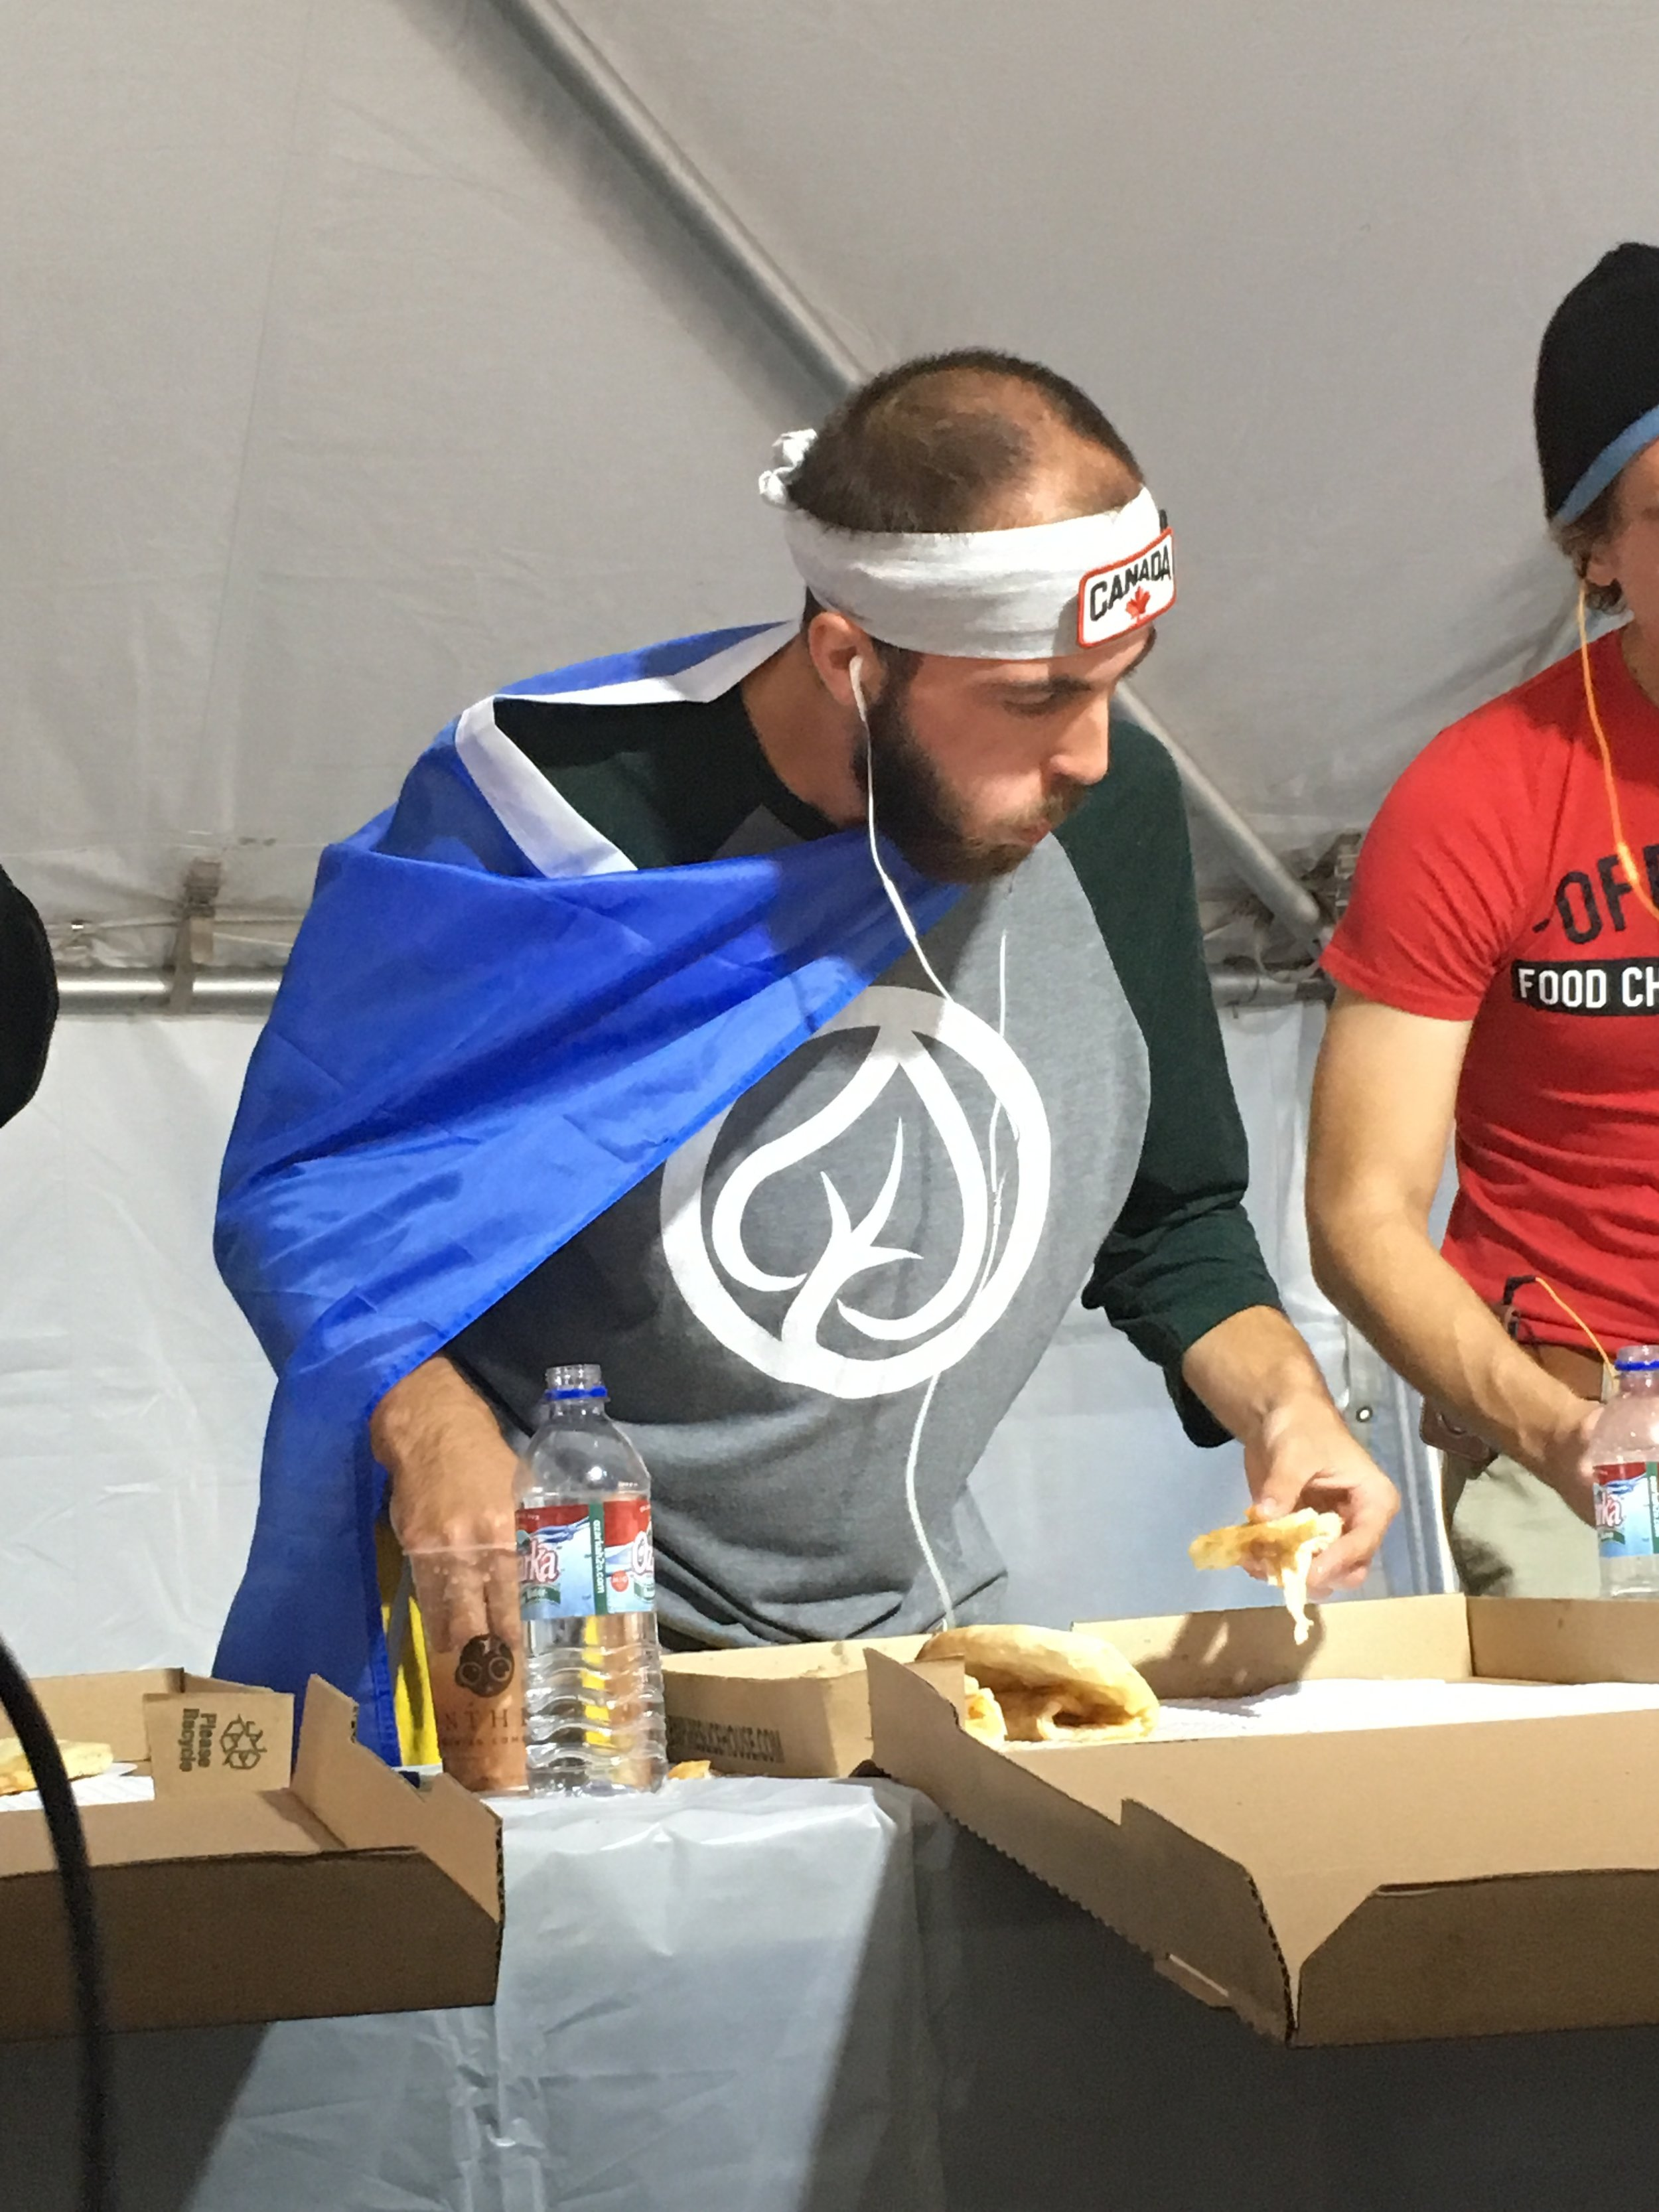 Scoping out the competition. In the end it came down to me and The Offical Food Chanllenge Shirt guy.